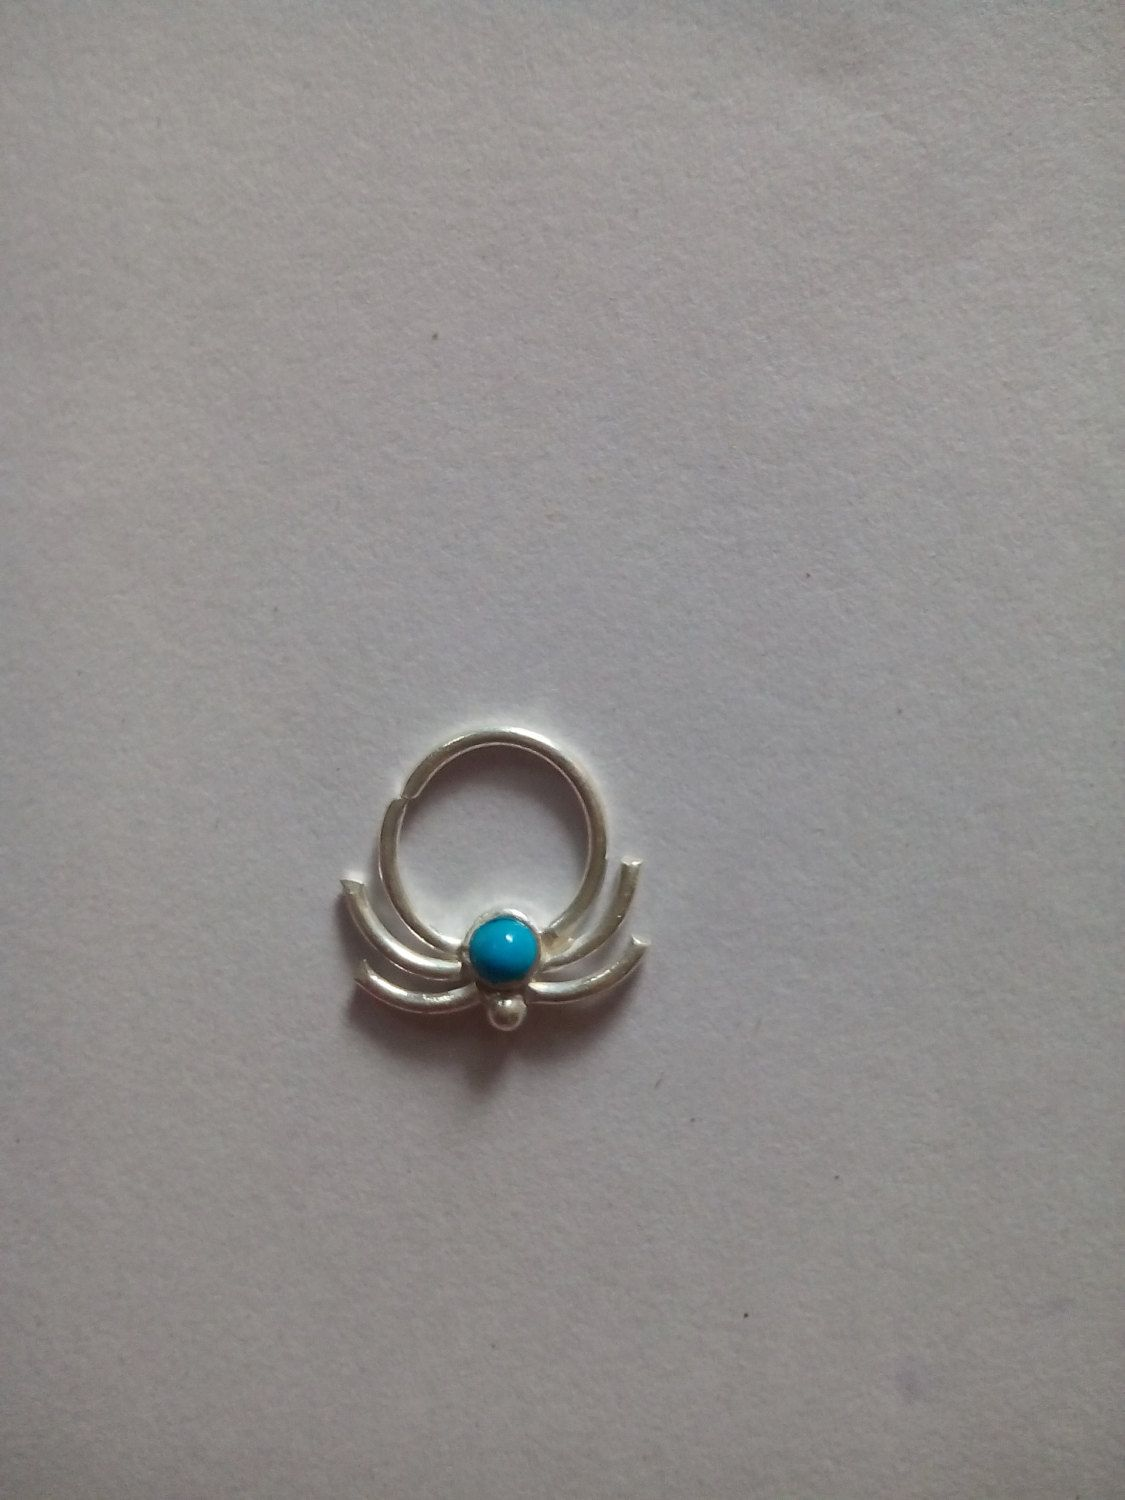 Unique Silver septum ring for Pierced Nose-indian Handmade Nose ring with Turquoise gemstone-Decorated Nose Hoop-Nostrill-free shipping by Gemstonebeadsfinding on Etsy